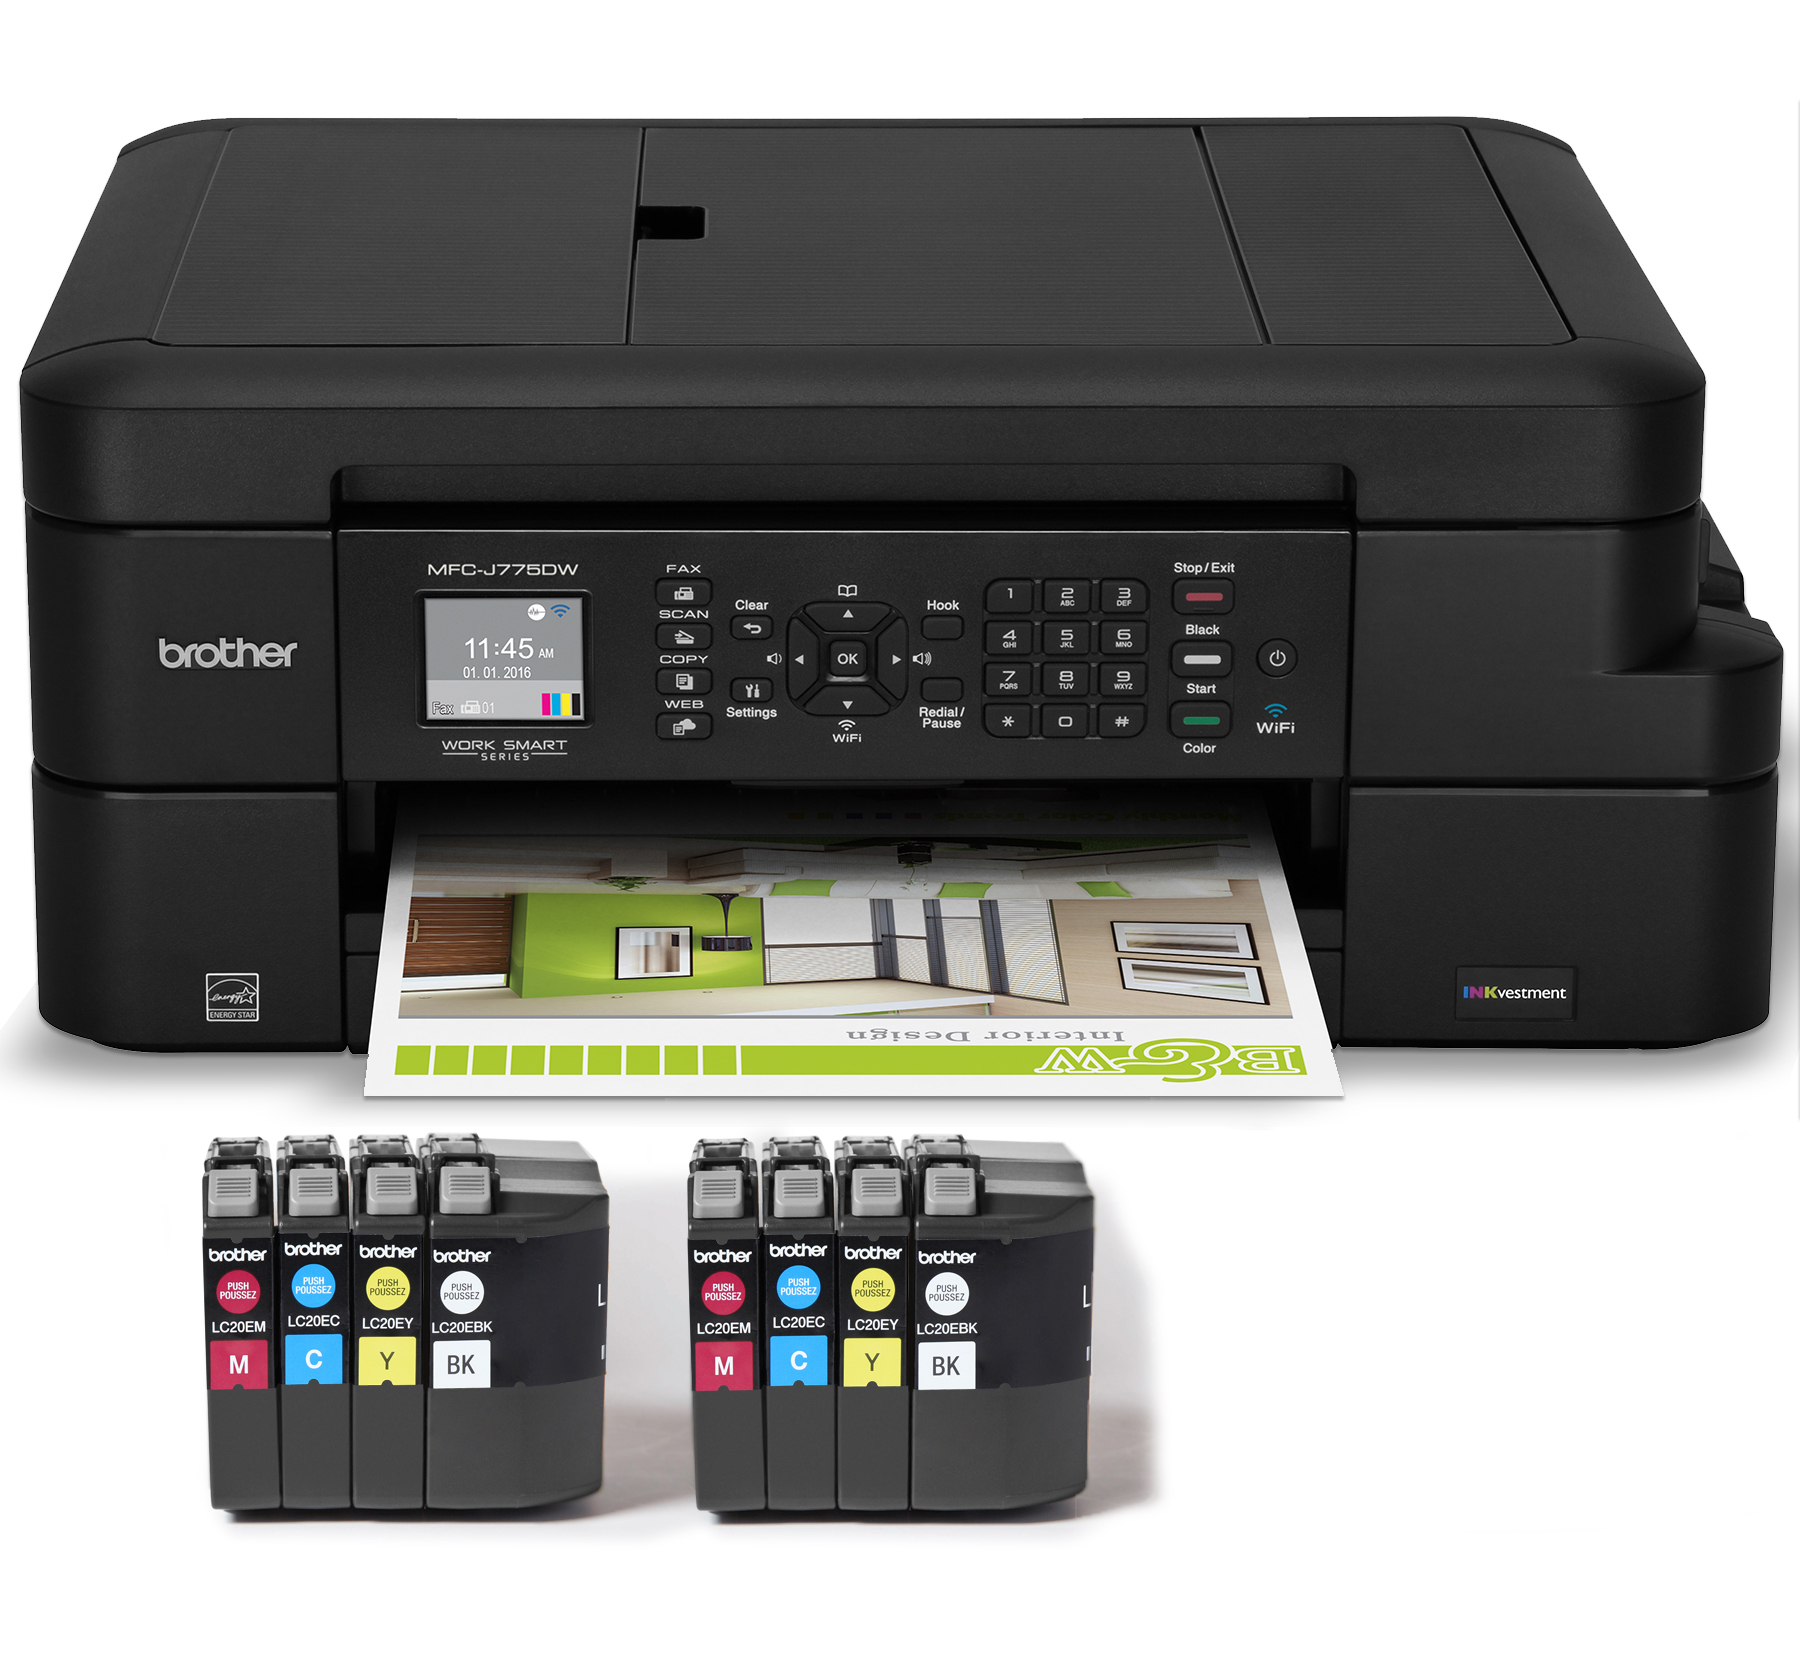 Brother MFC-J775DWL Color Inkjet All-in-One Printer with up to 2 Years of Ink (8 INKvestment Cartridges Included)